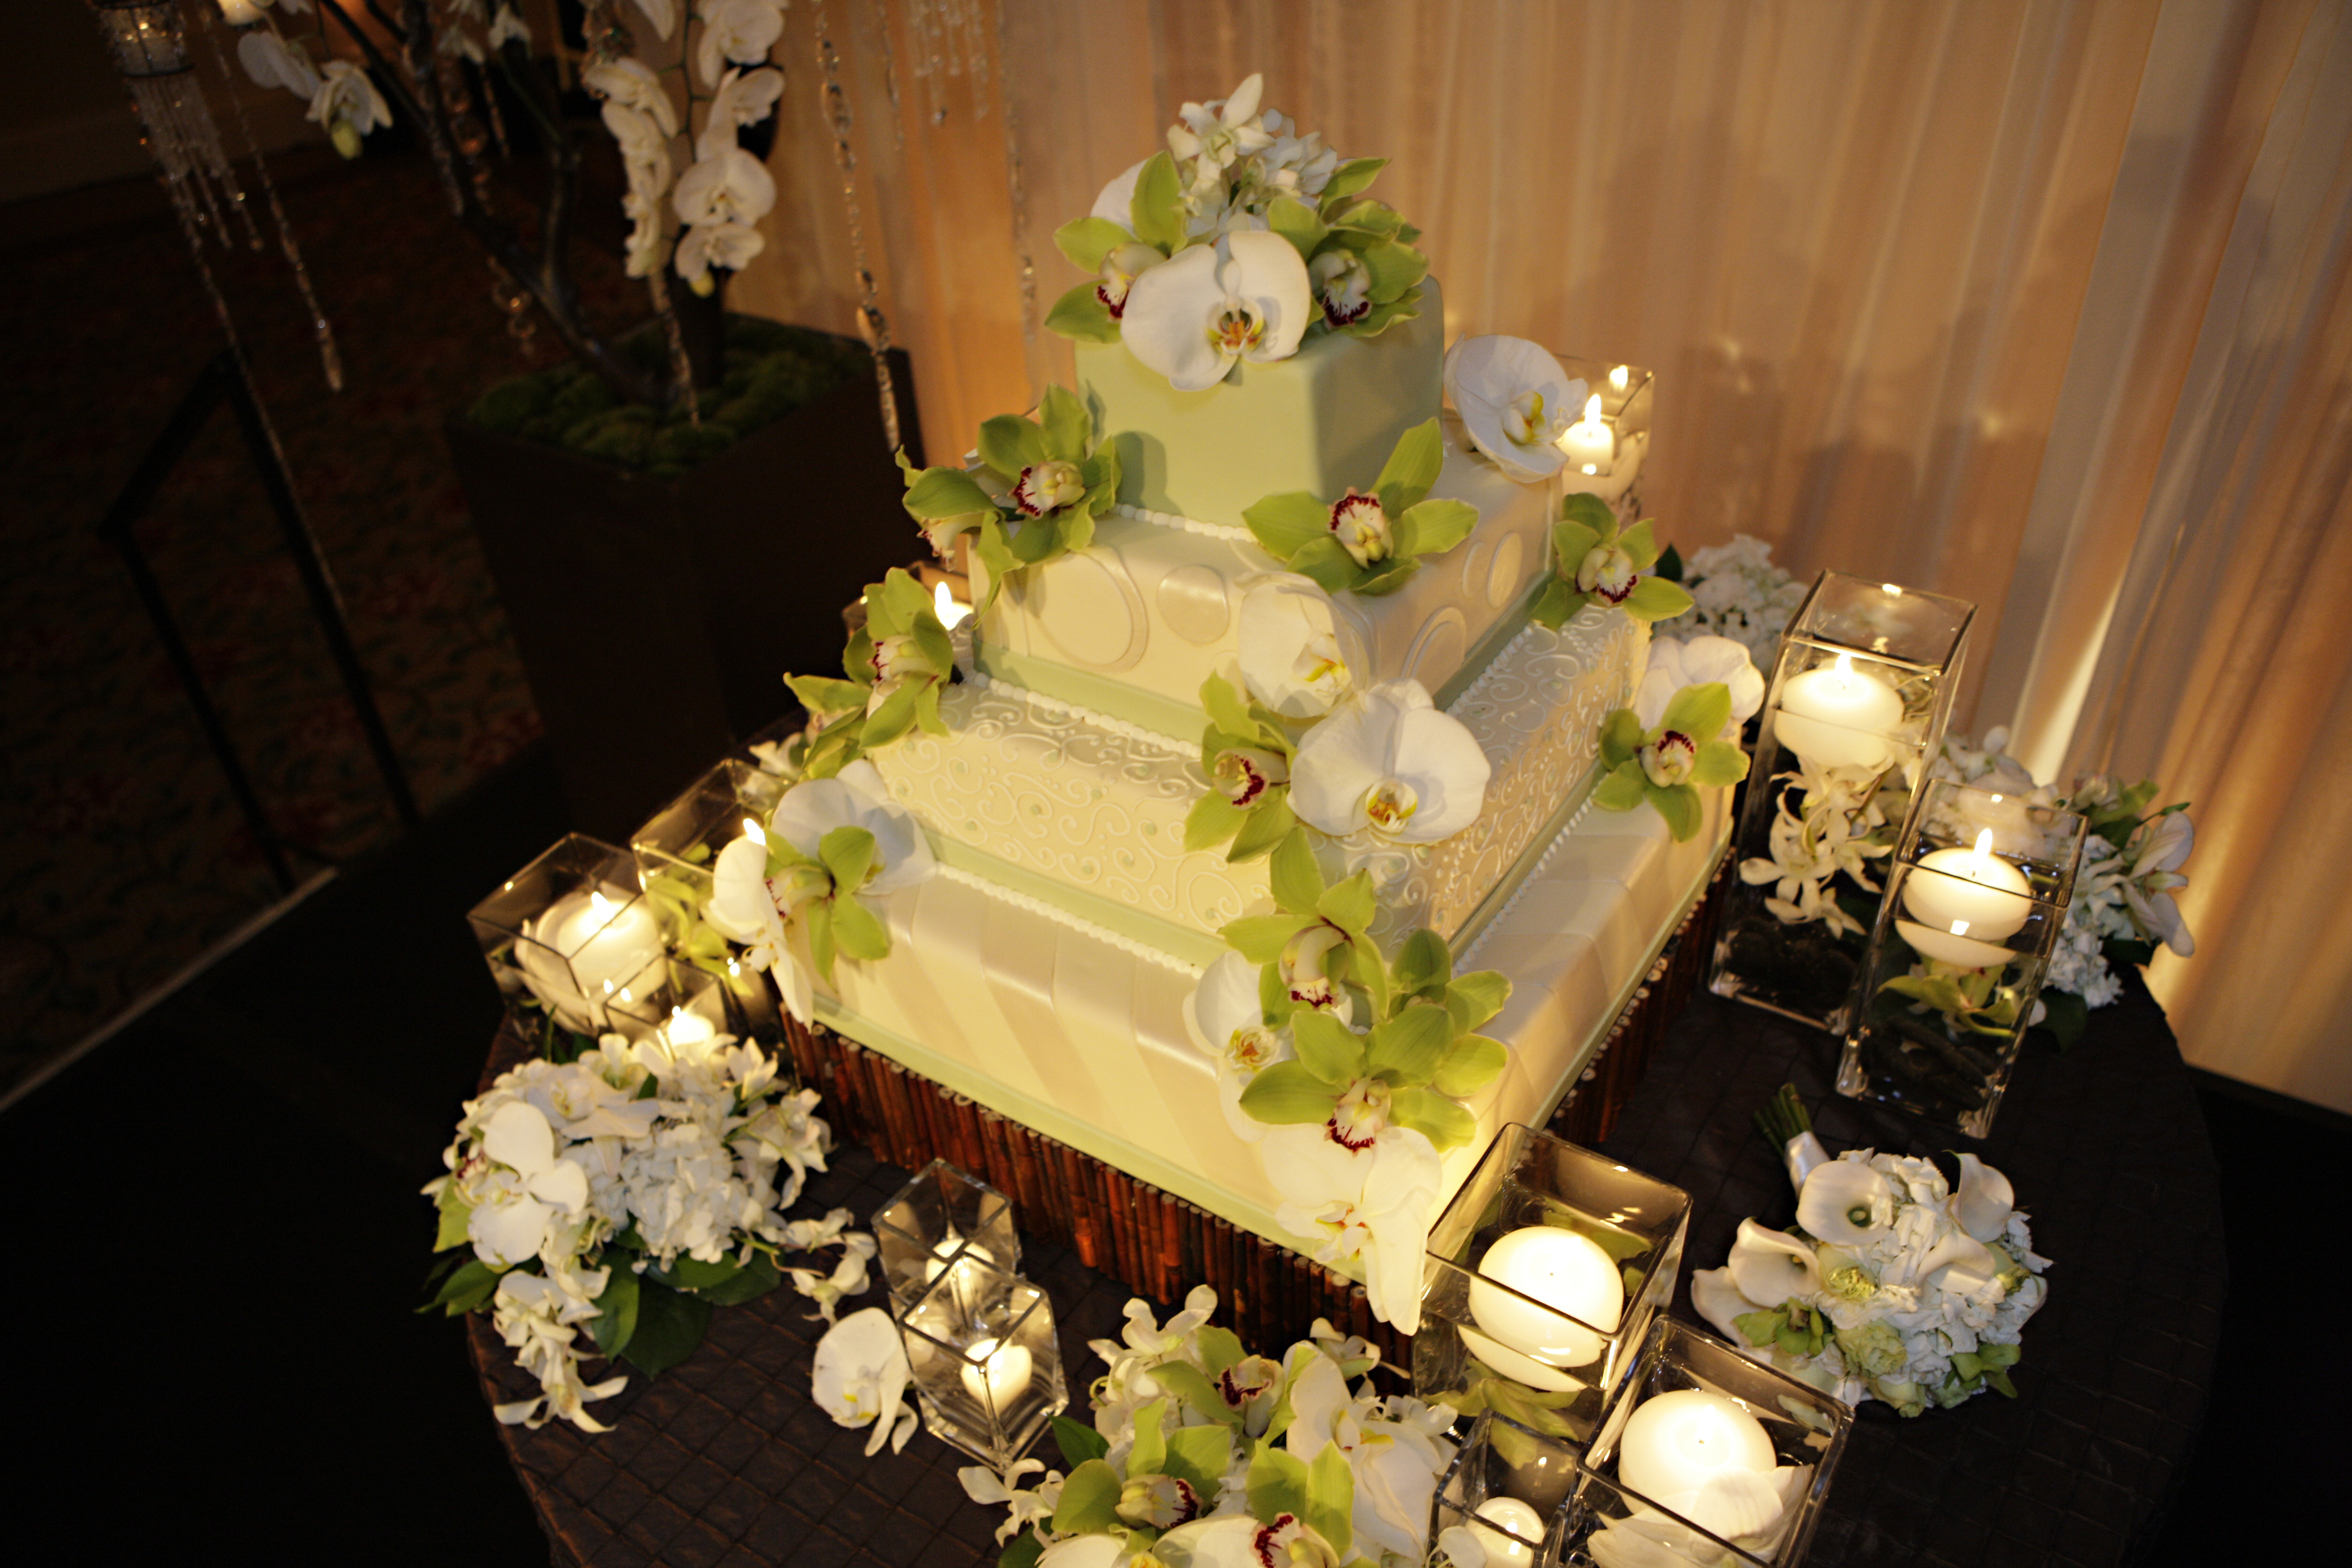 Reception, Flowers & Decor, Decor, Cakes, green, brown, cake, Floral Wedding Cakes, Flowers, Orchid